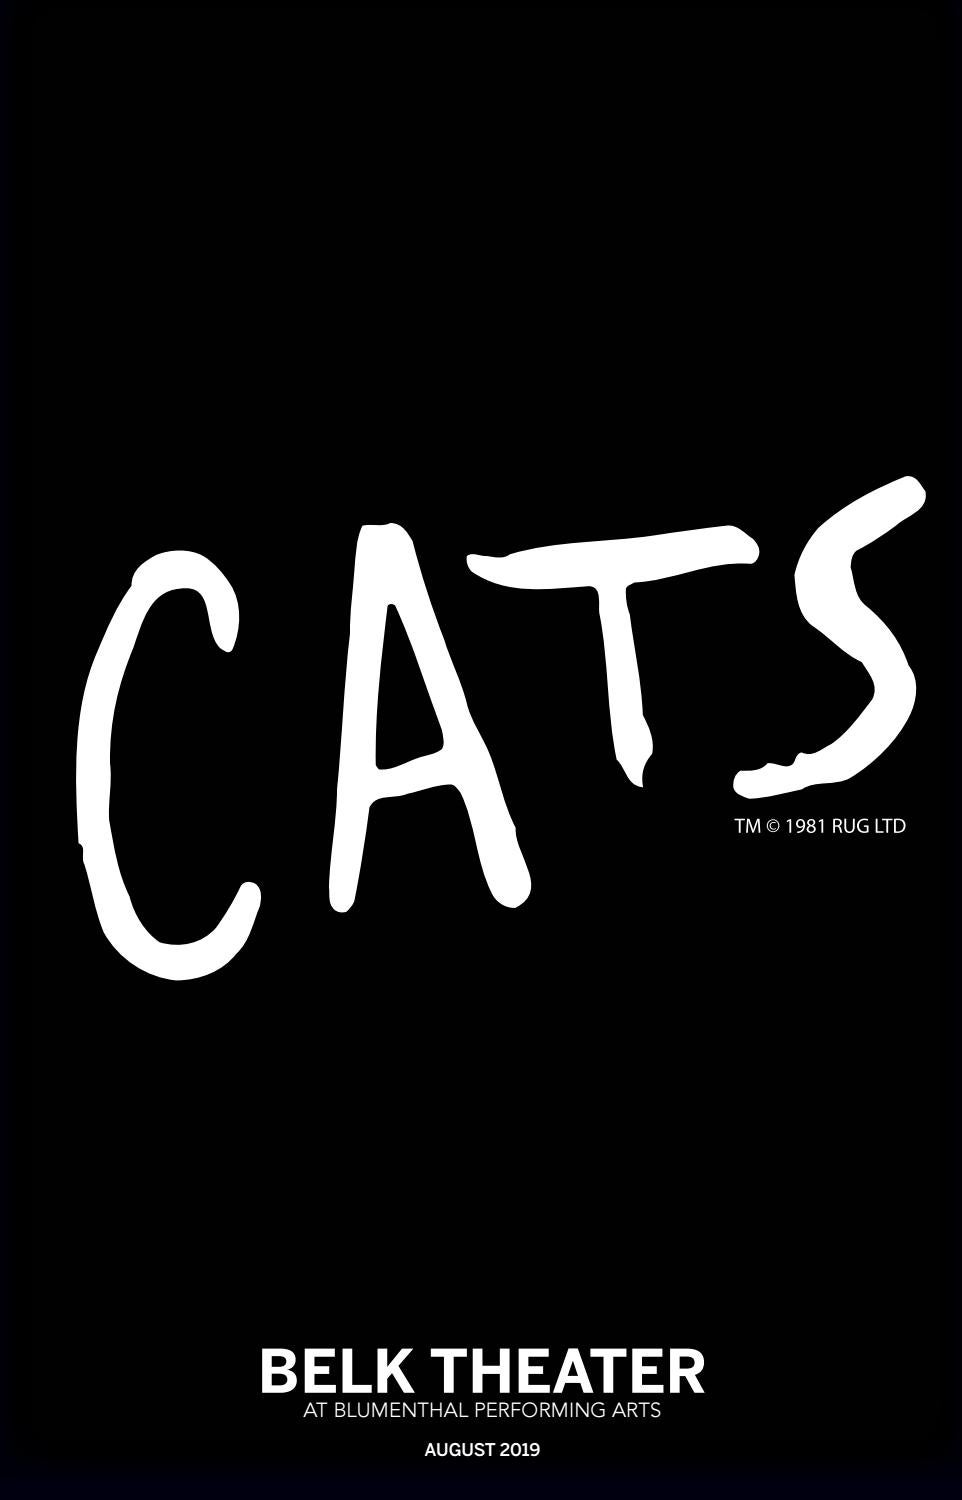 Cats Online Playbill By Blumenthal Performing Arts Issuu